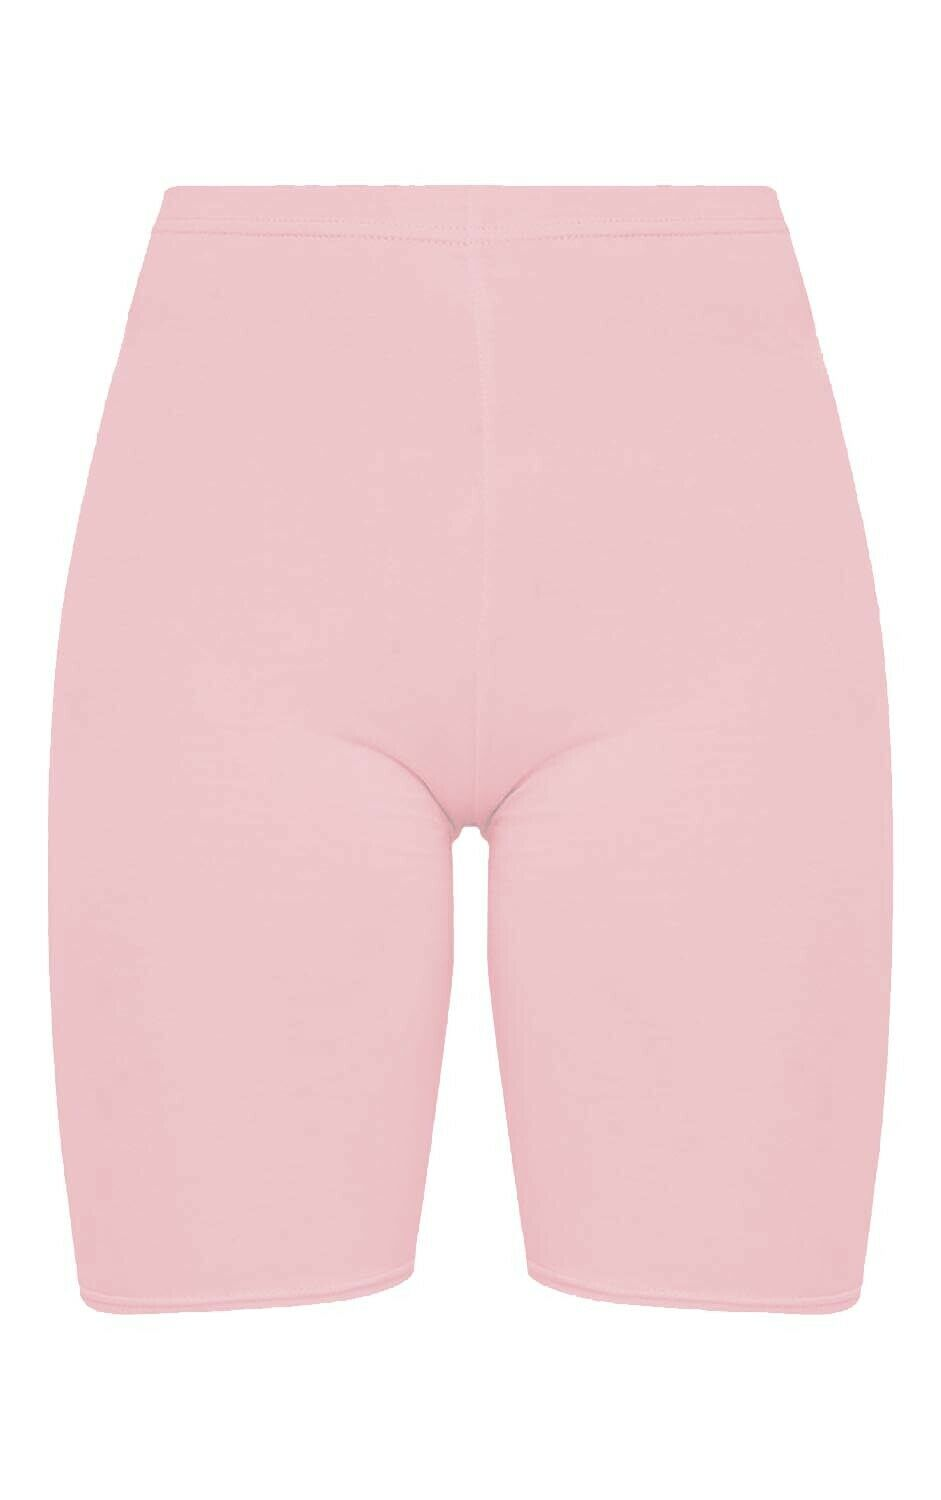 Crazy Chick Women Baby Pink Microfibre Cycling Shorts